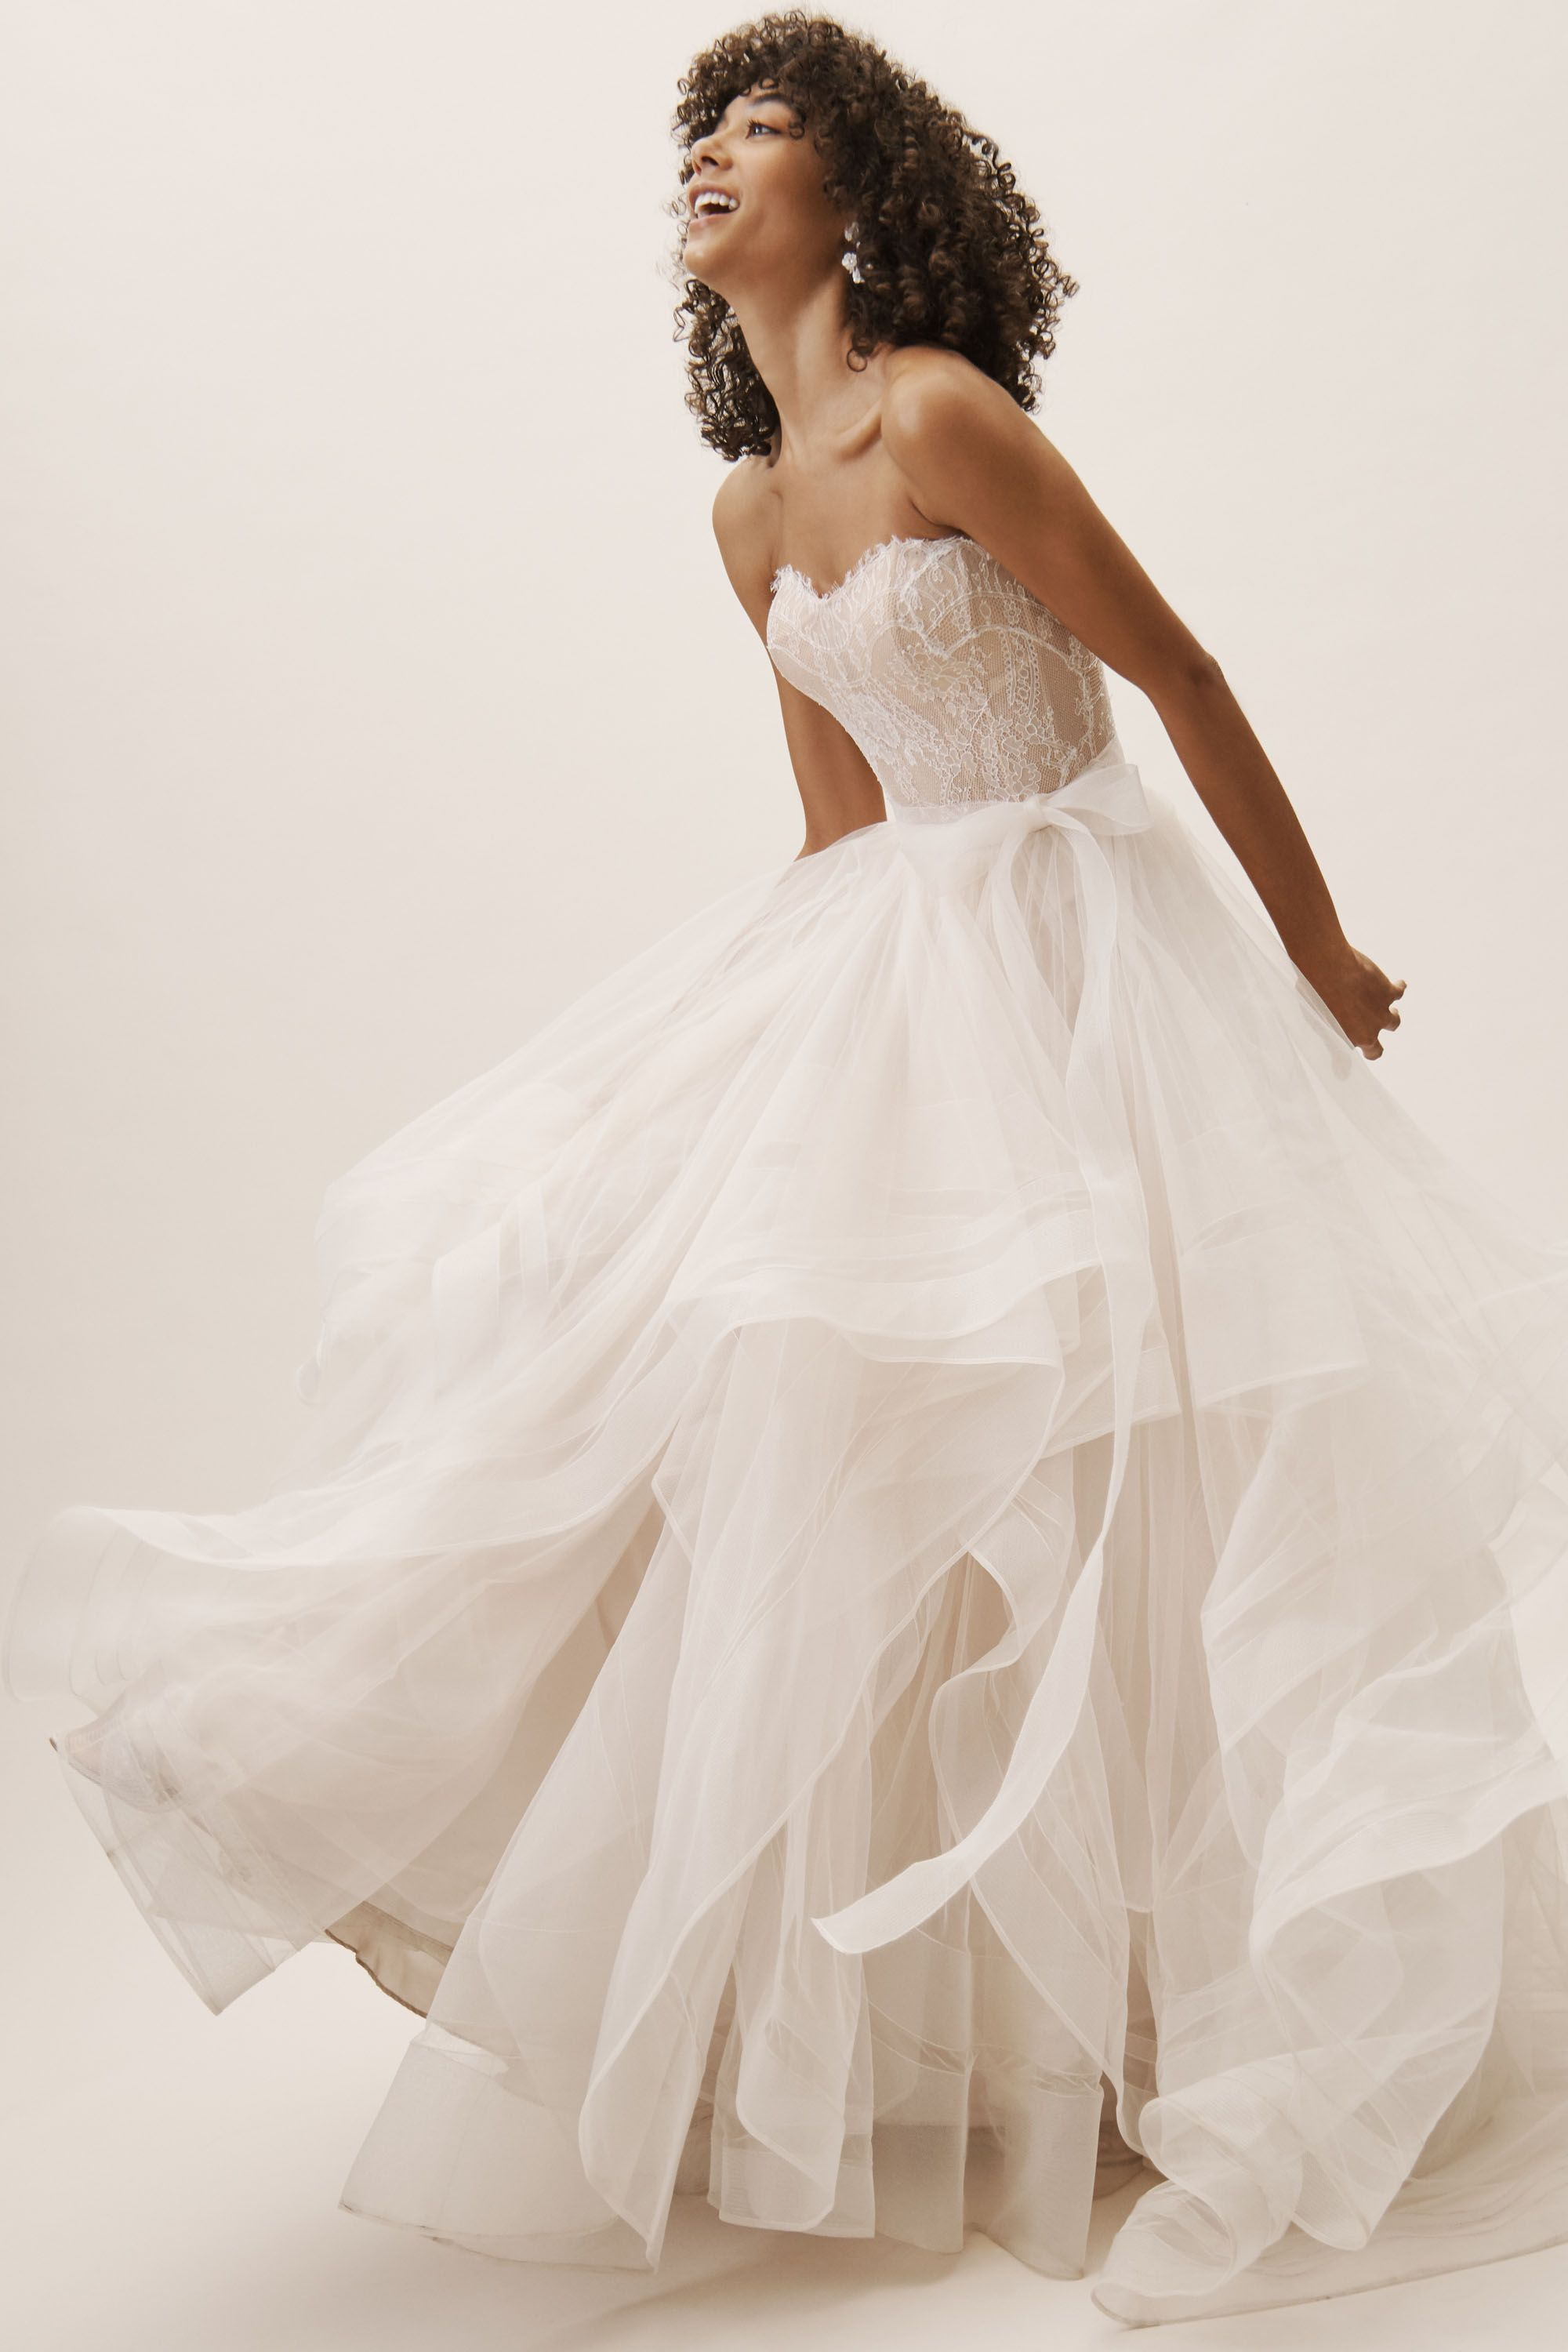 33++ Two in one wedding gown ideas